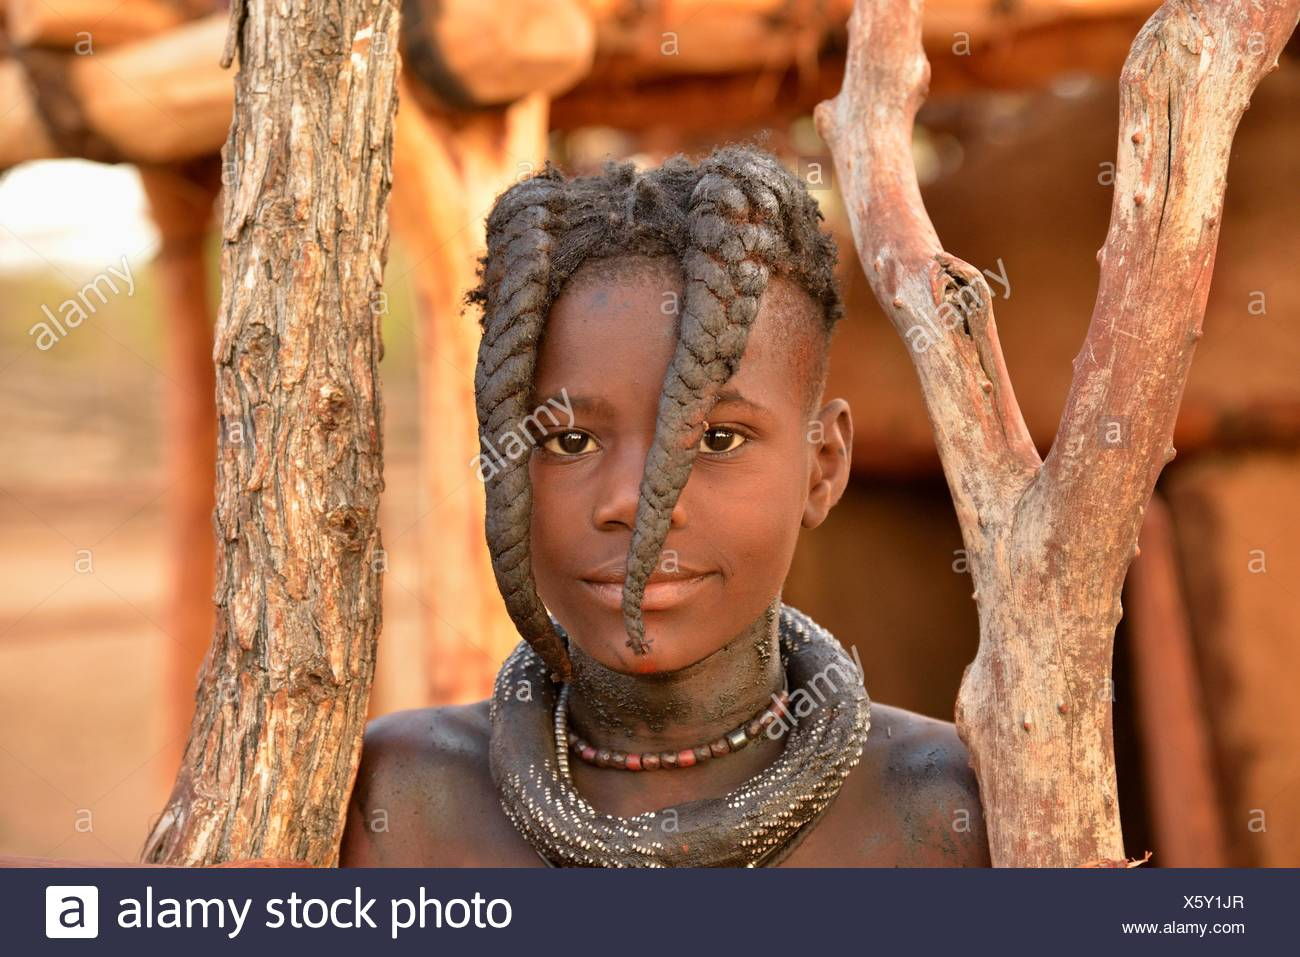 Himba girl with typical hairstyle, Omuramba, Kaokoland, Kunene, Namibia - Stock Image